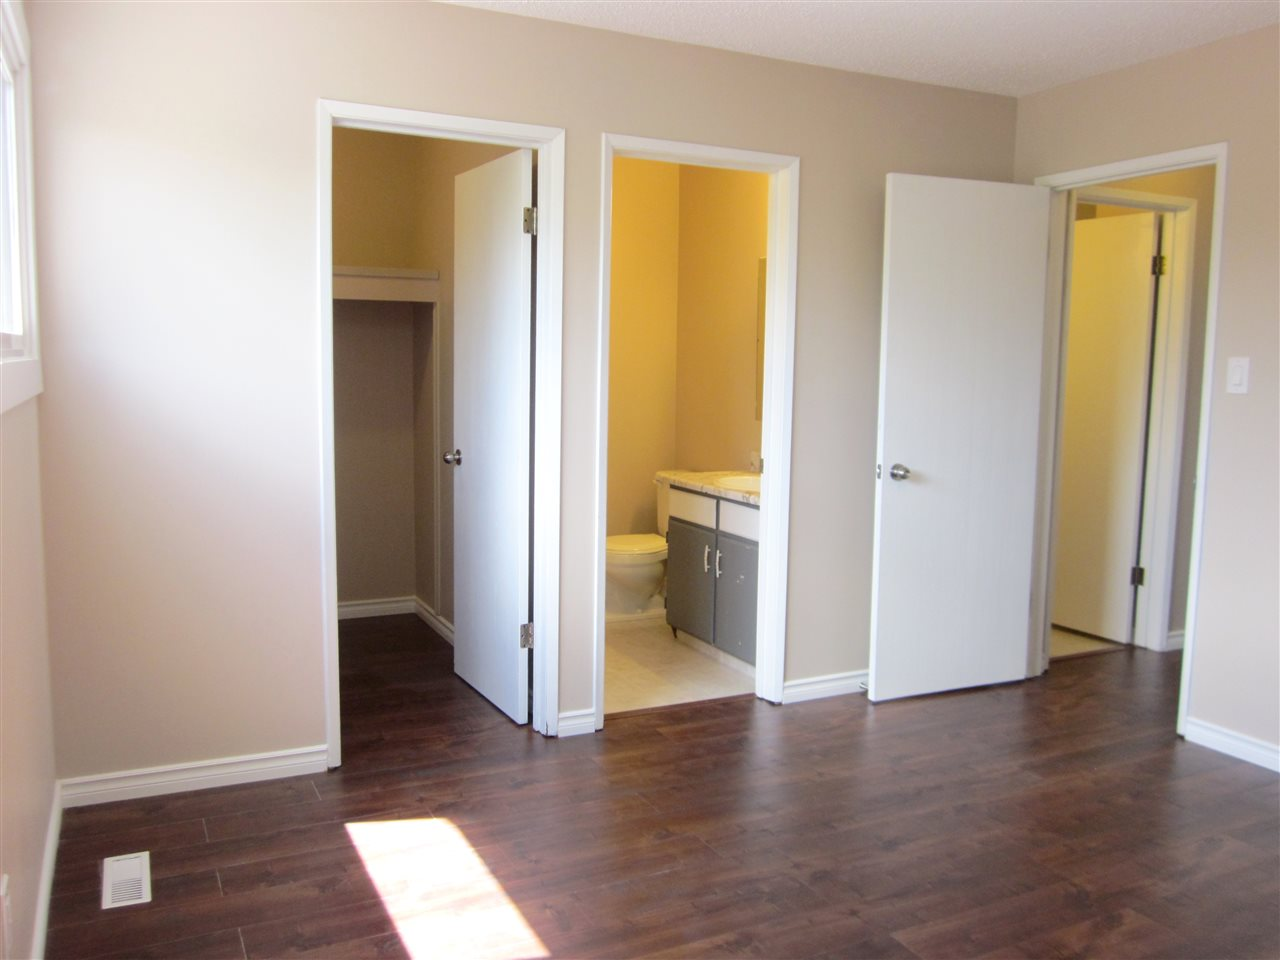 Master bedroom has walk-in closet and 2 pcs. ensuite.